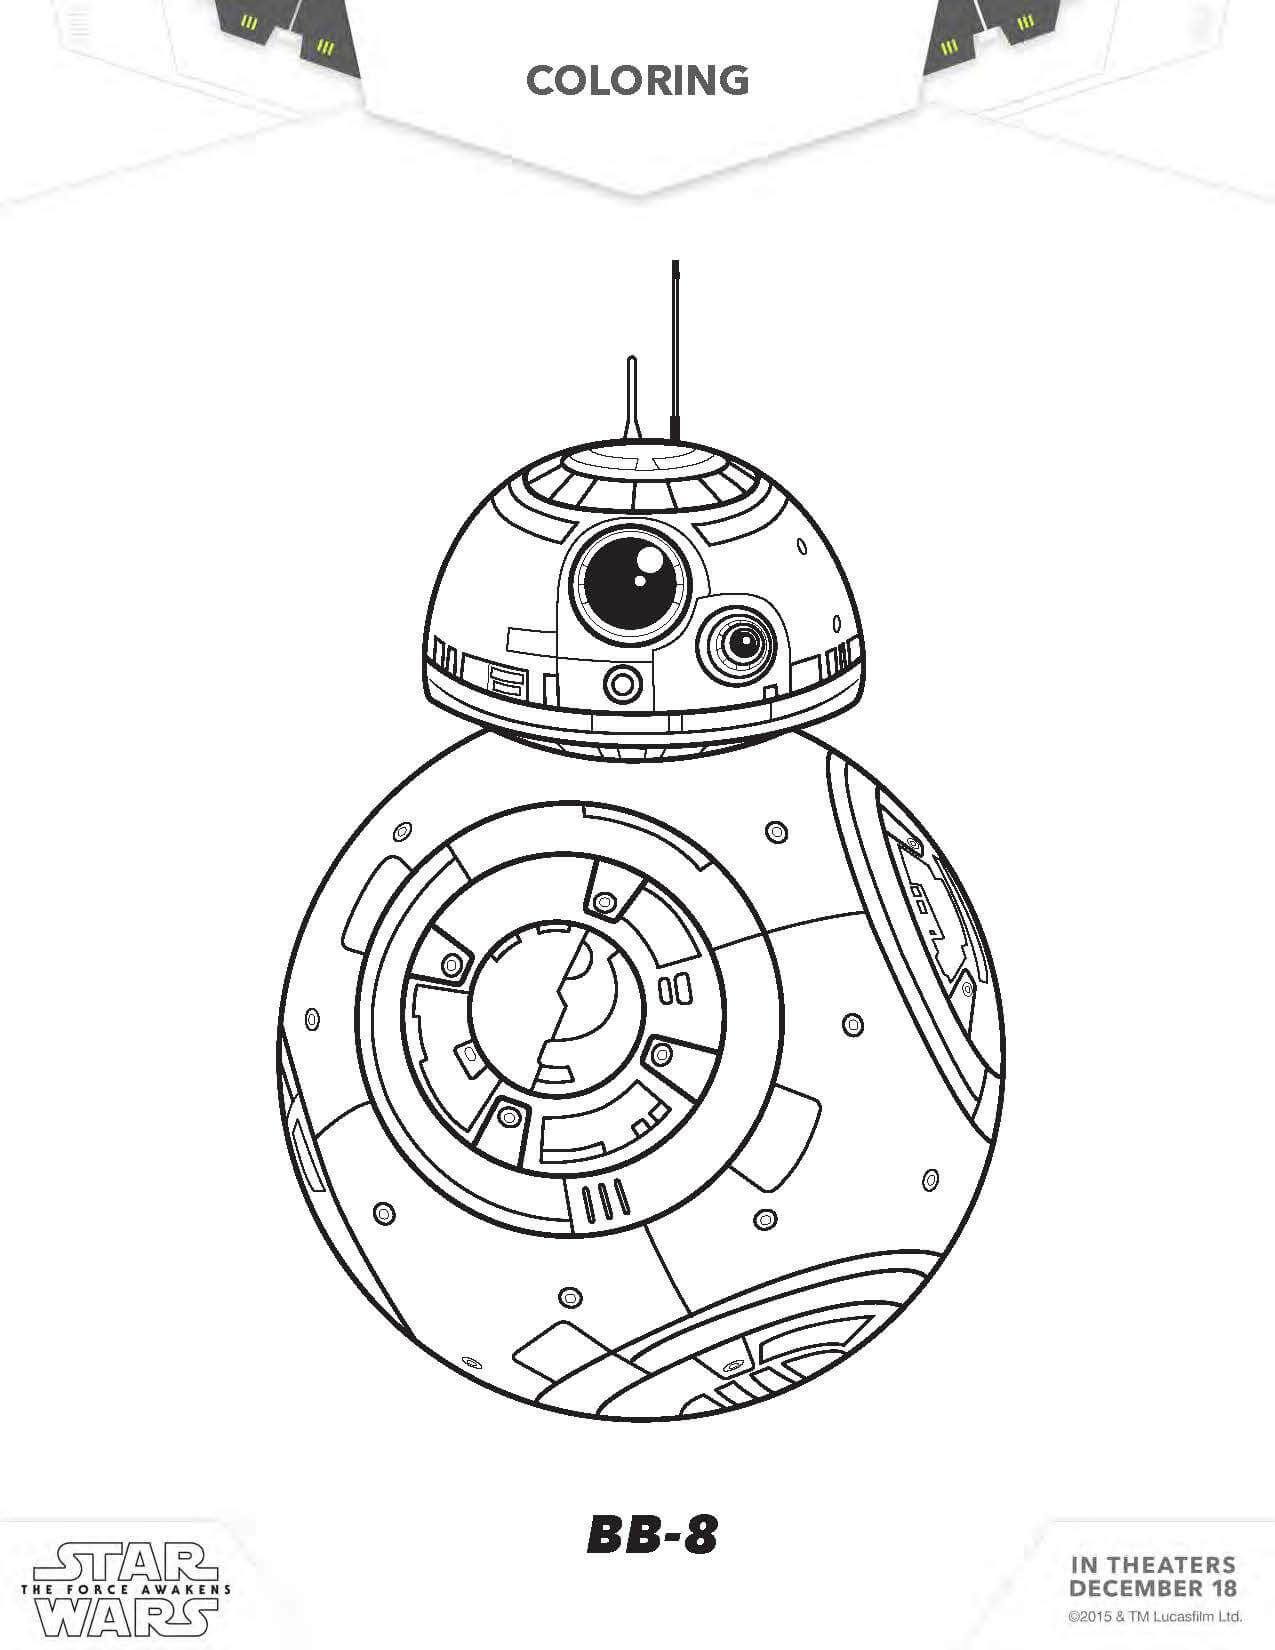 star wars free coloring pages free star wars printable coloring pages bb 8 c2 b5 free wars coloring pages star